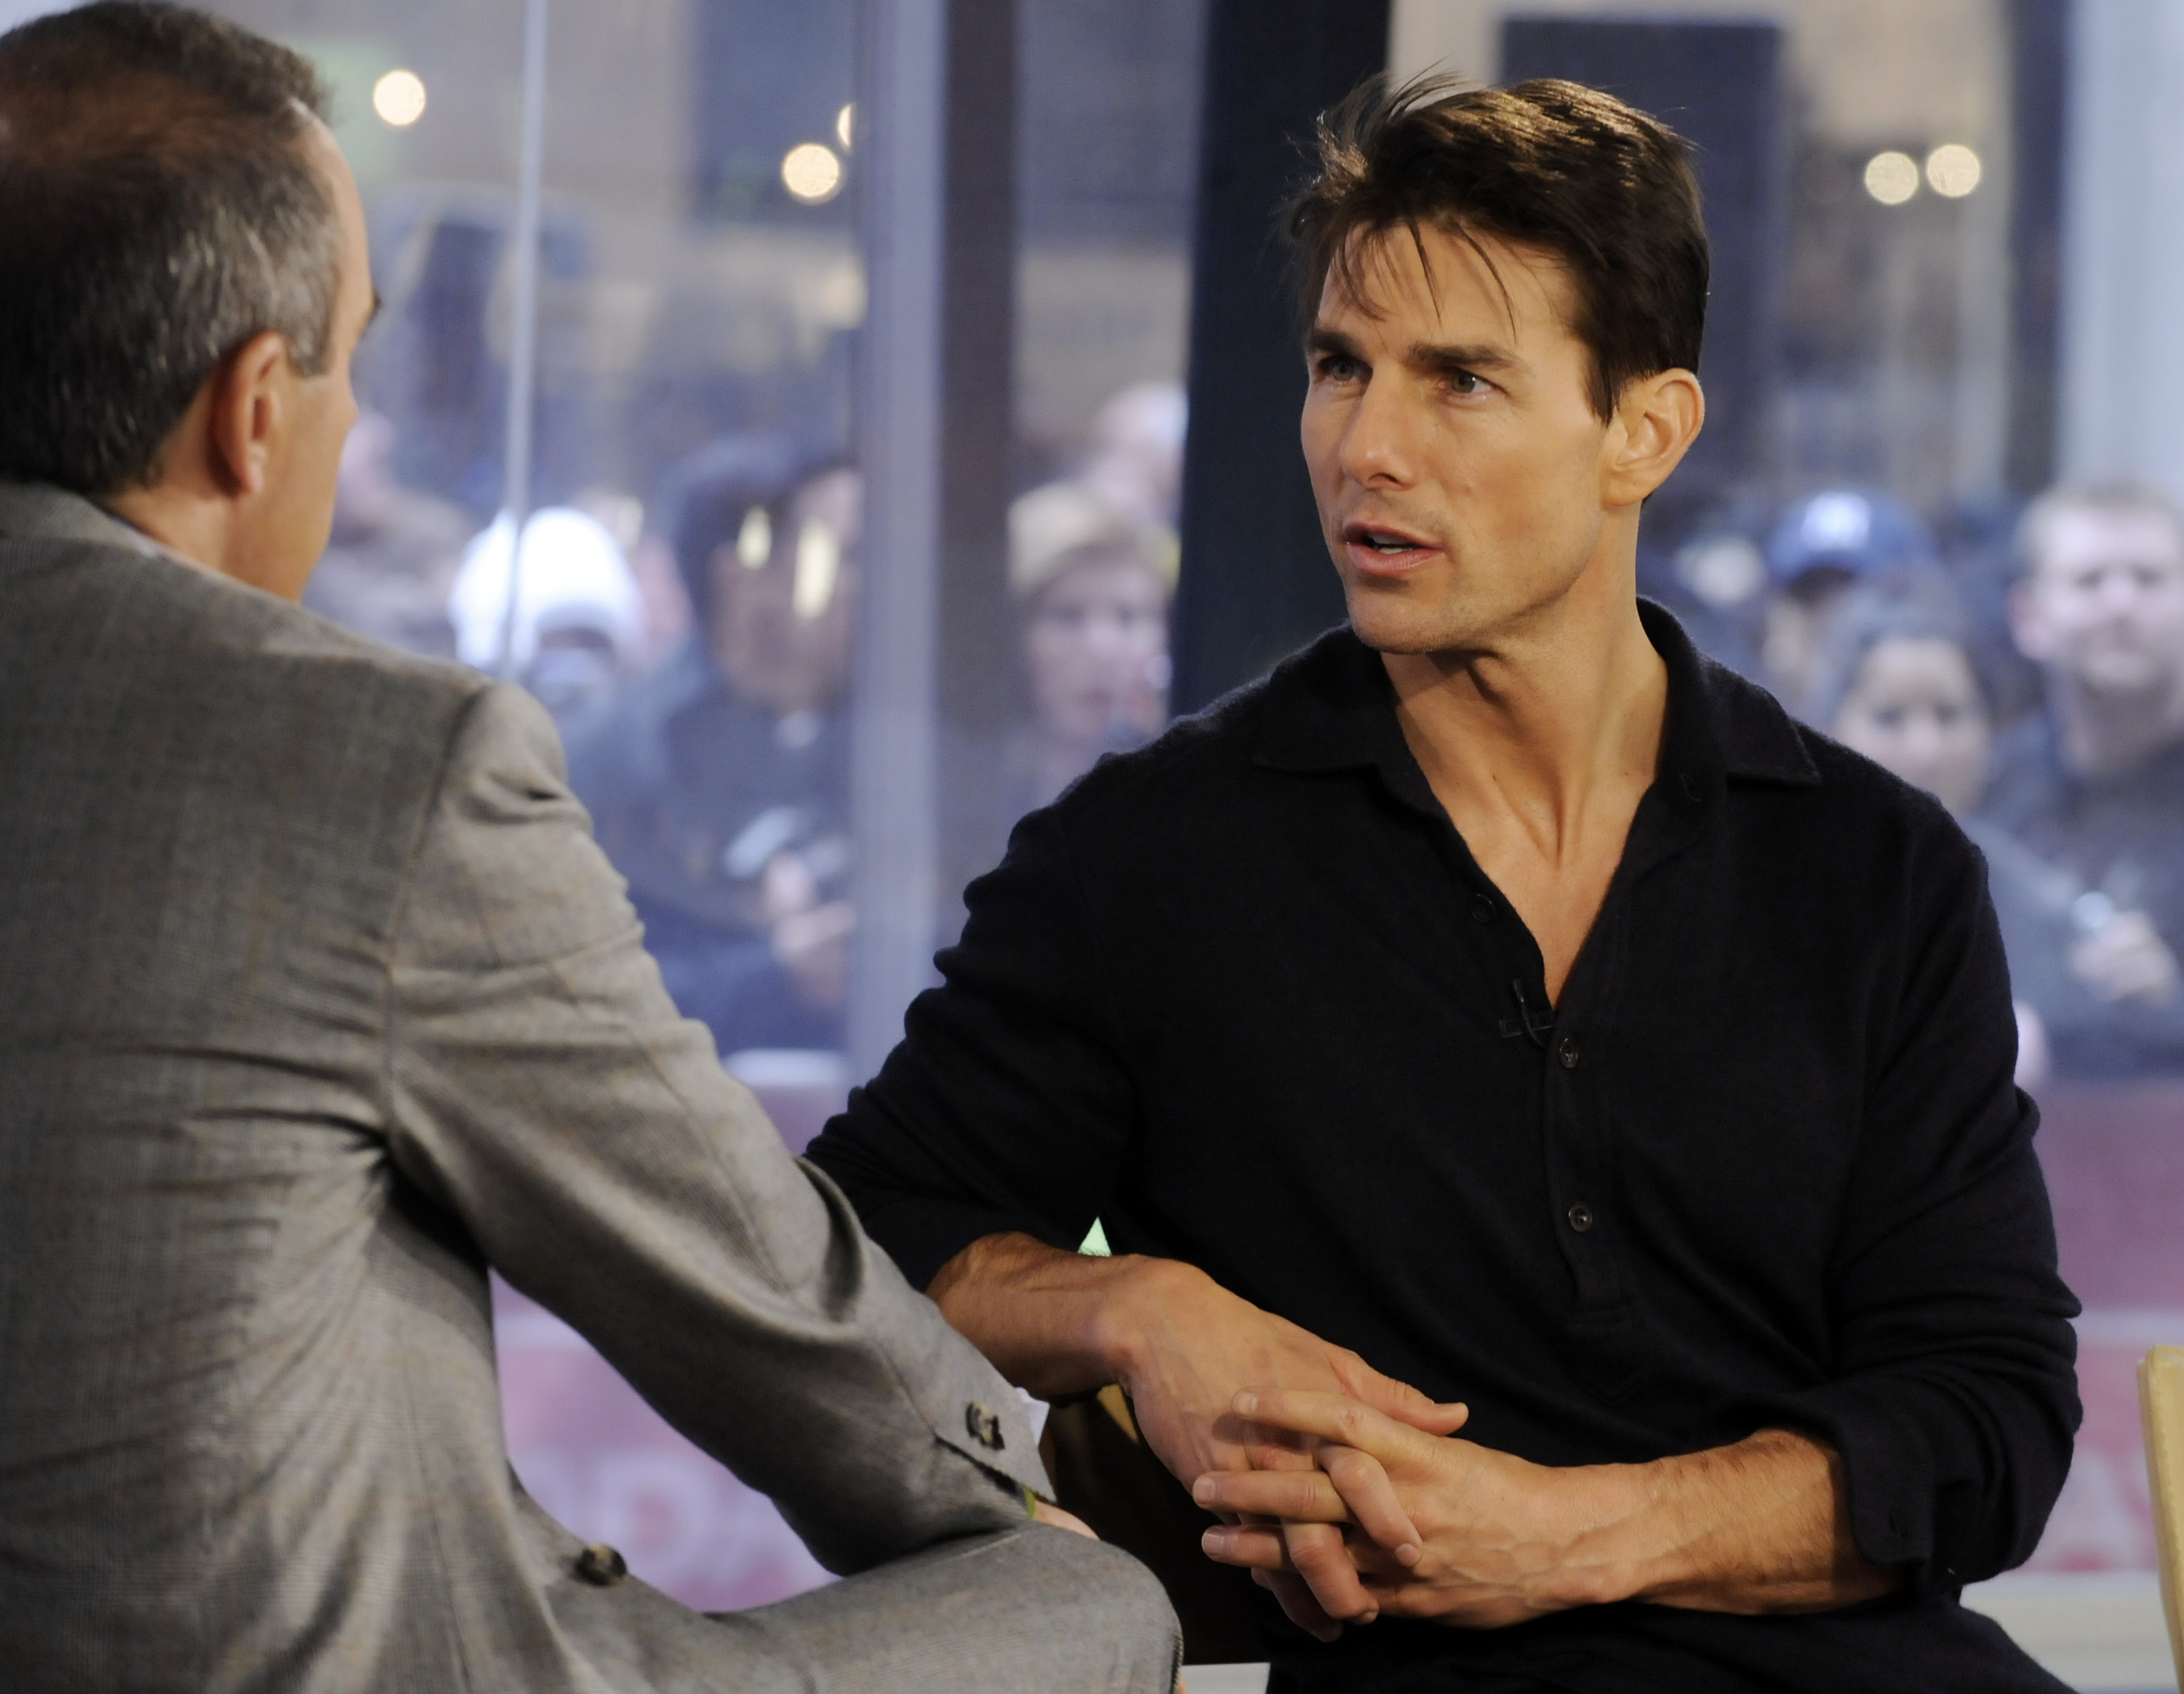 """Actor Tom Cruise, right, is interviewd by NBC """"Today"""" television show co-host Matt Lauer on the set in New York in 2008. Cruise will be boarding Axiom Commercial Space Station in 2021 to film a new action-adventure movie, it was confirmed last week."""